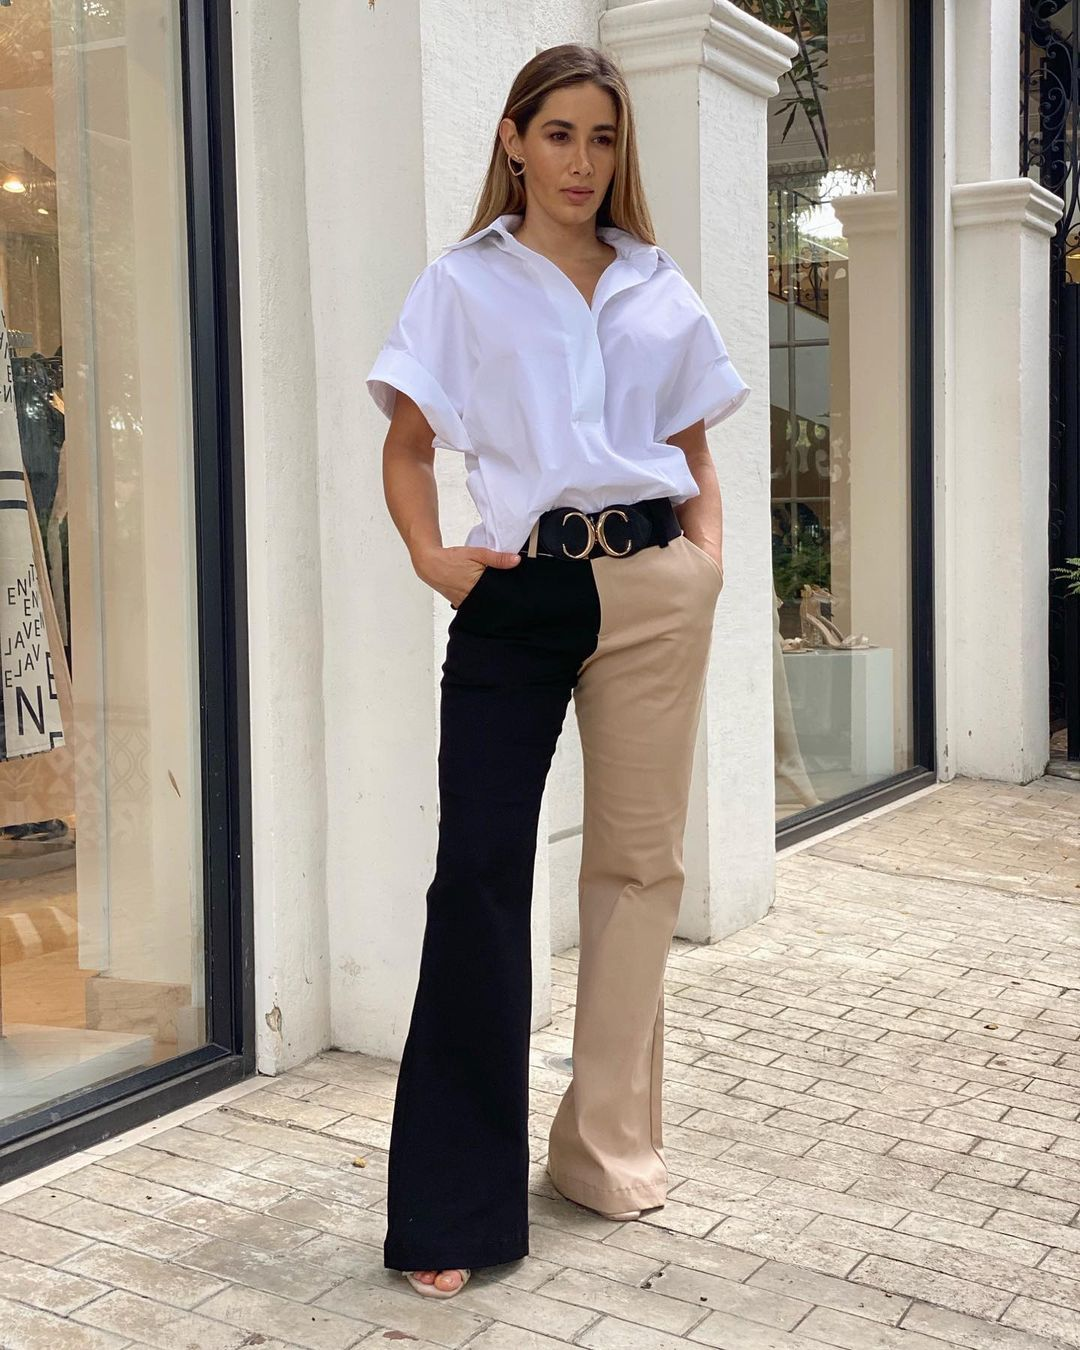 Opt for wide leg pants